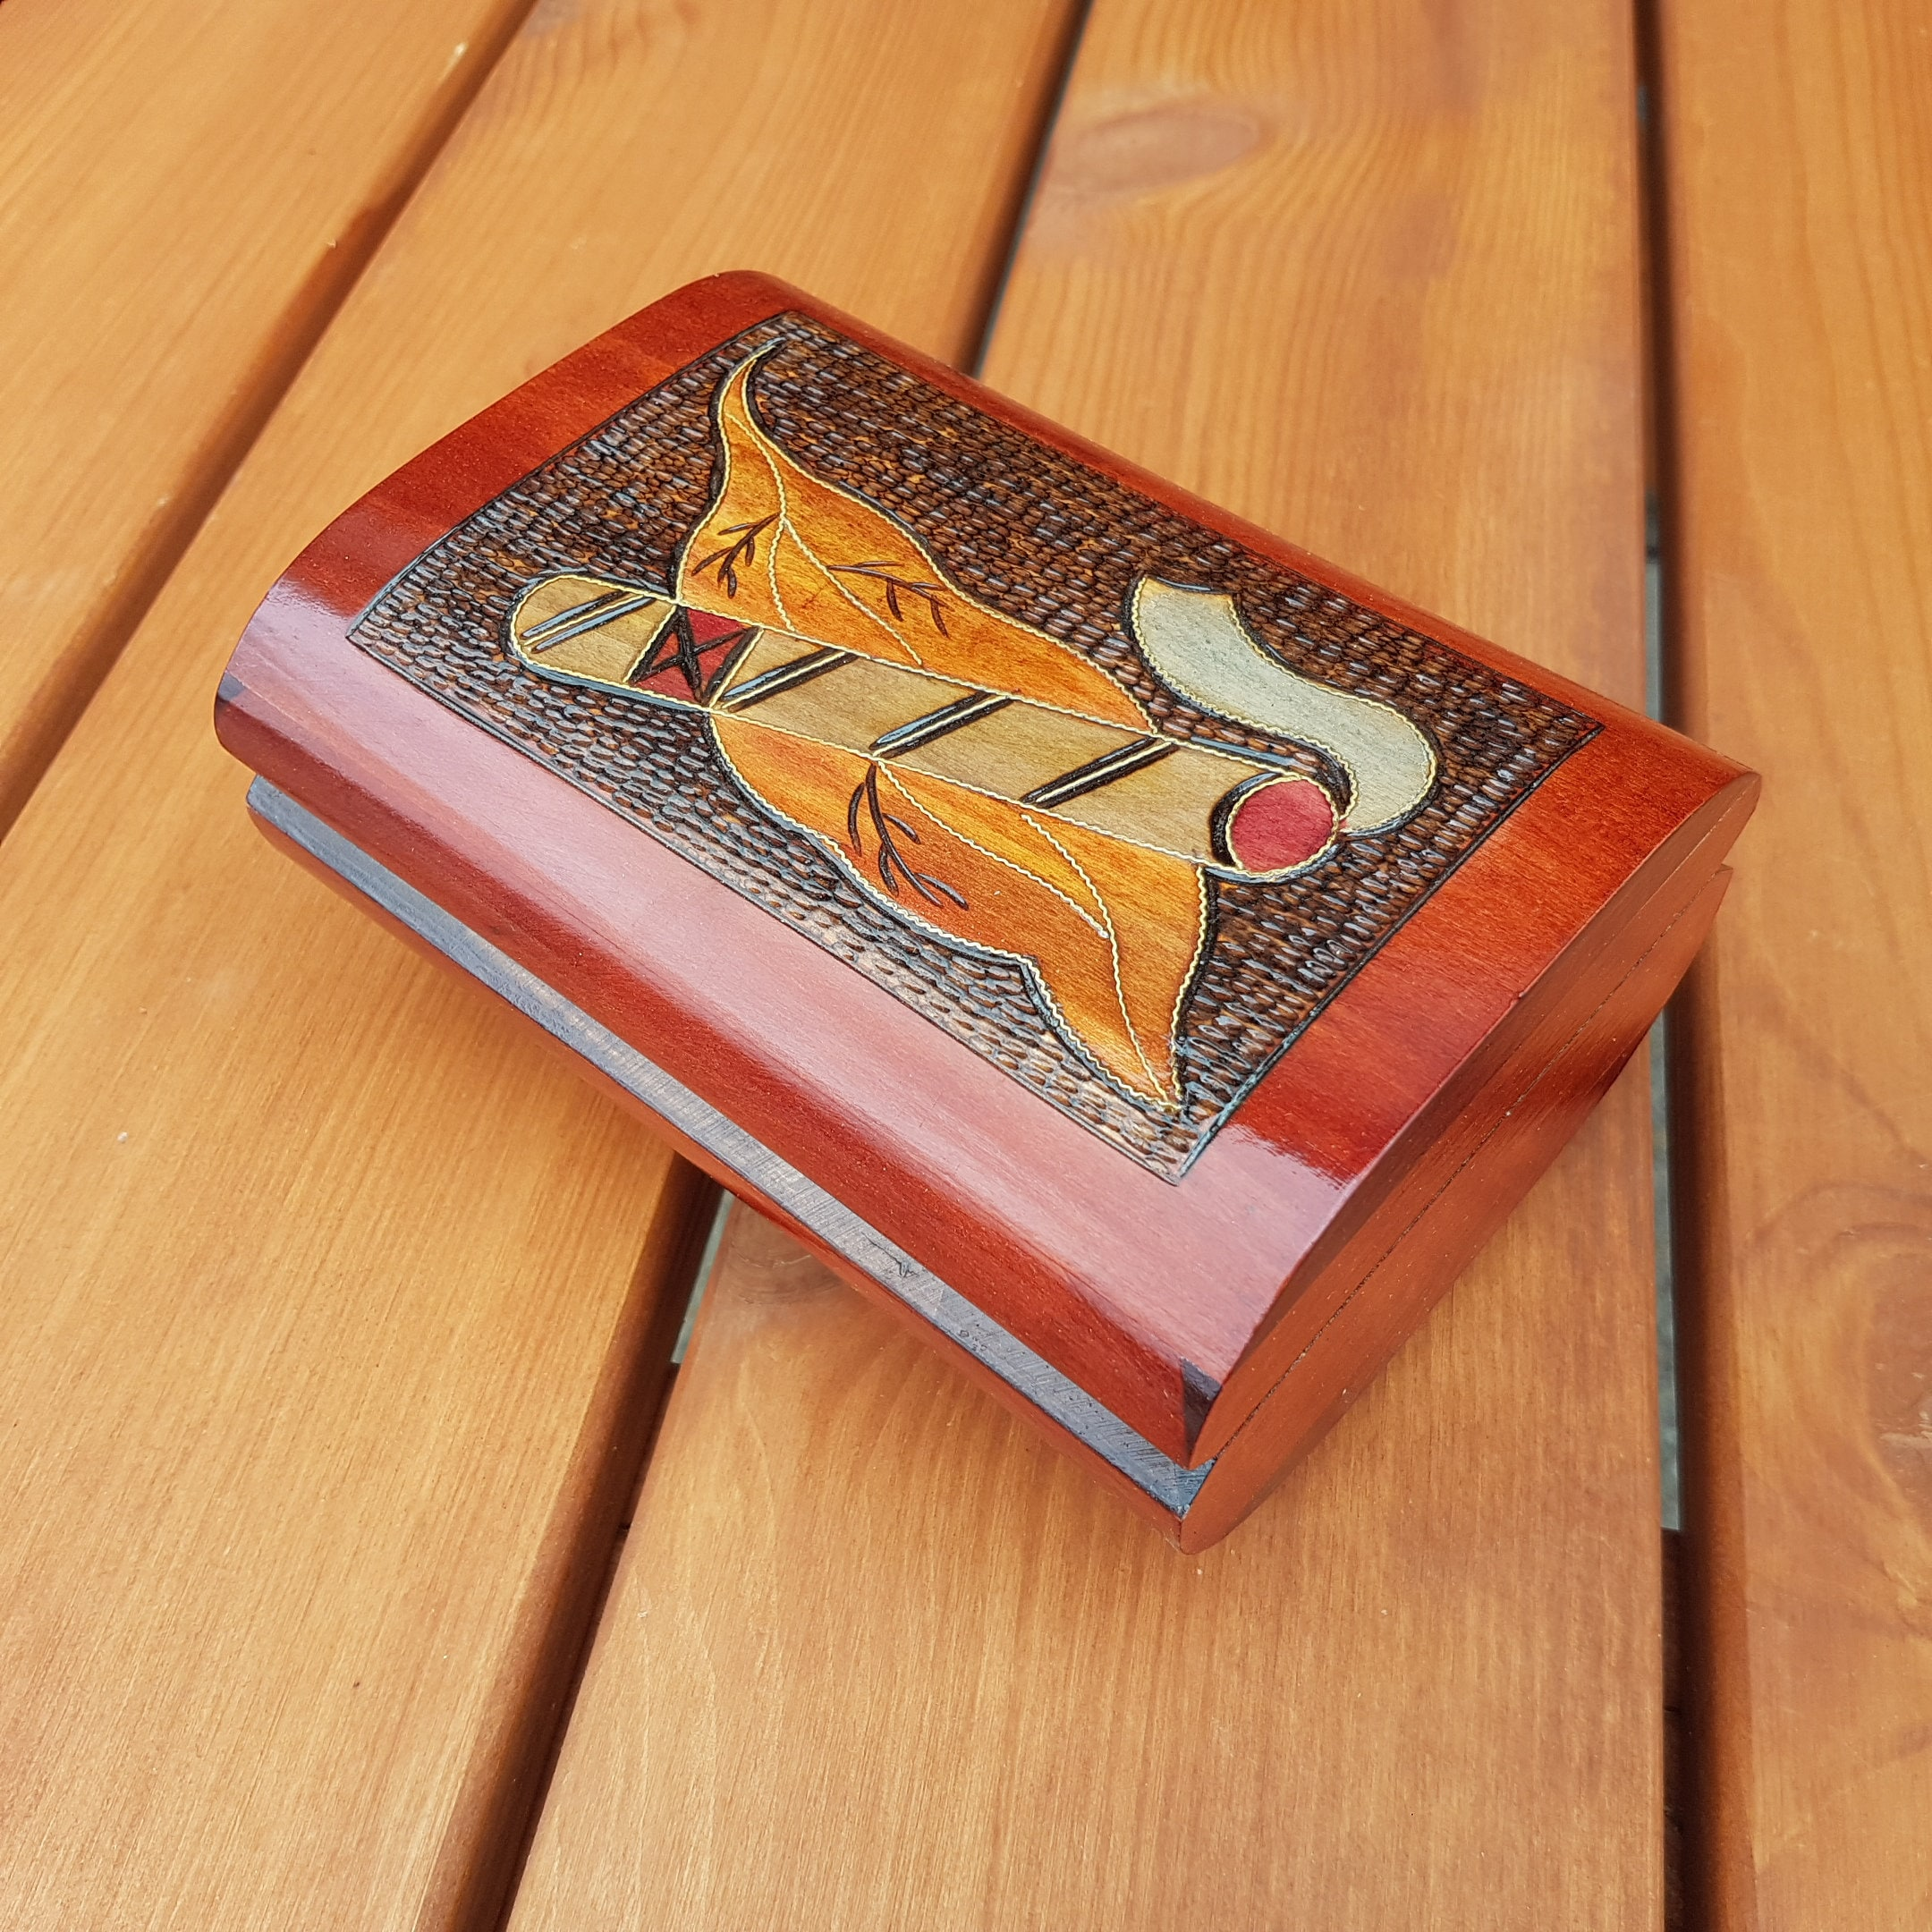 Wooden Box For Cigars Hand Decorated